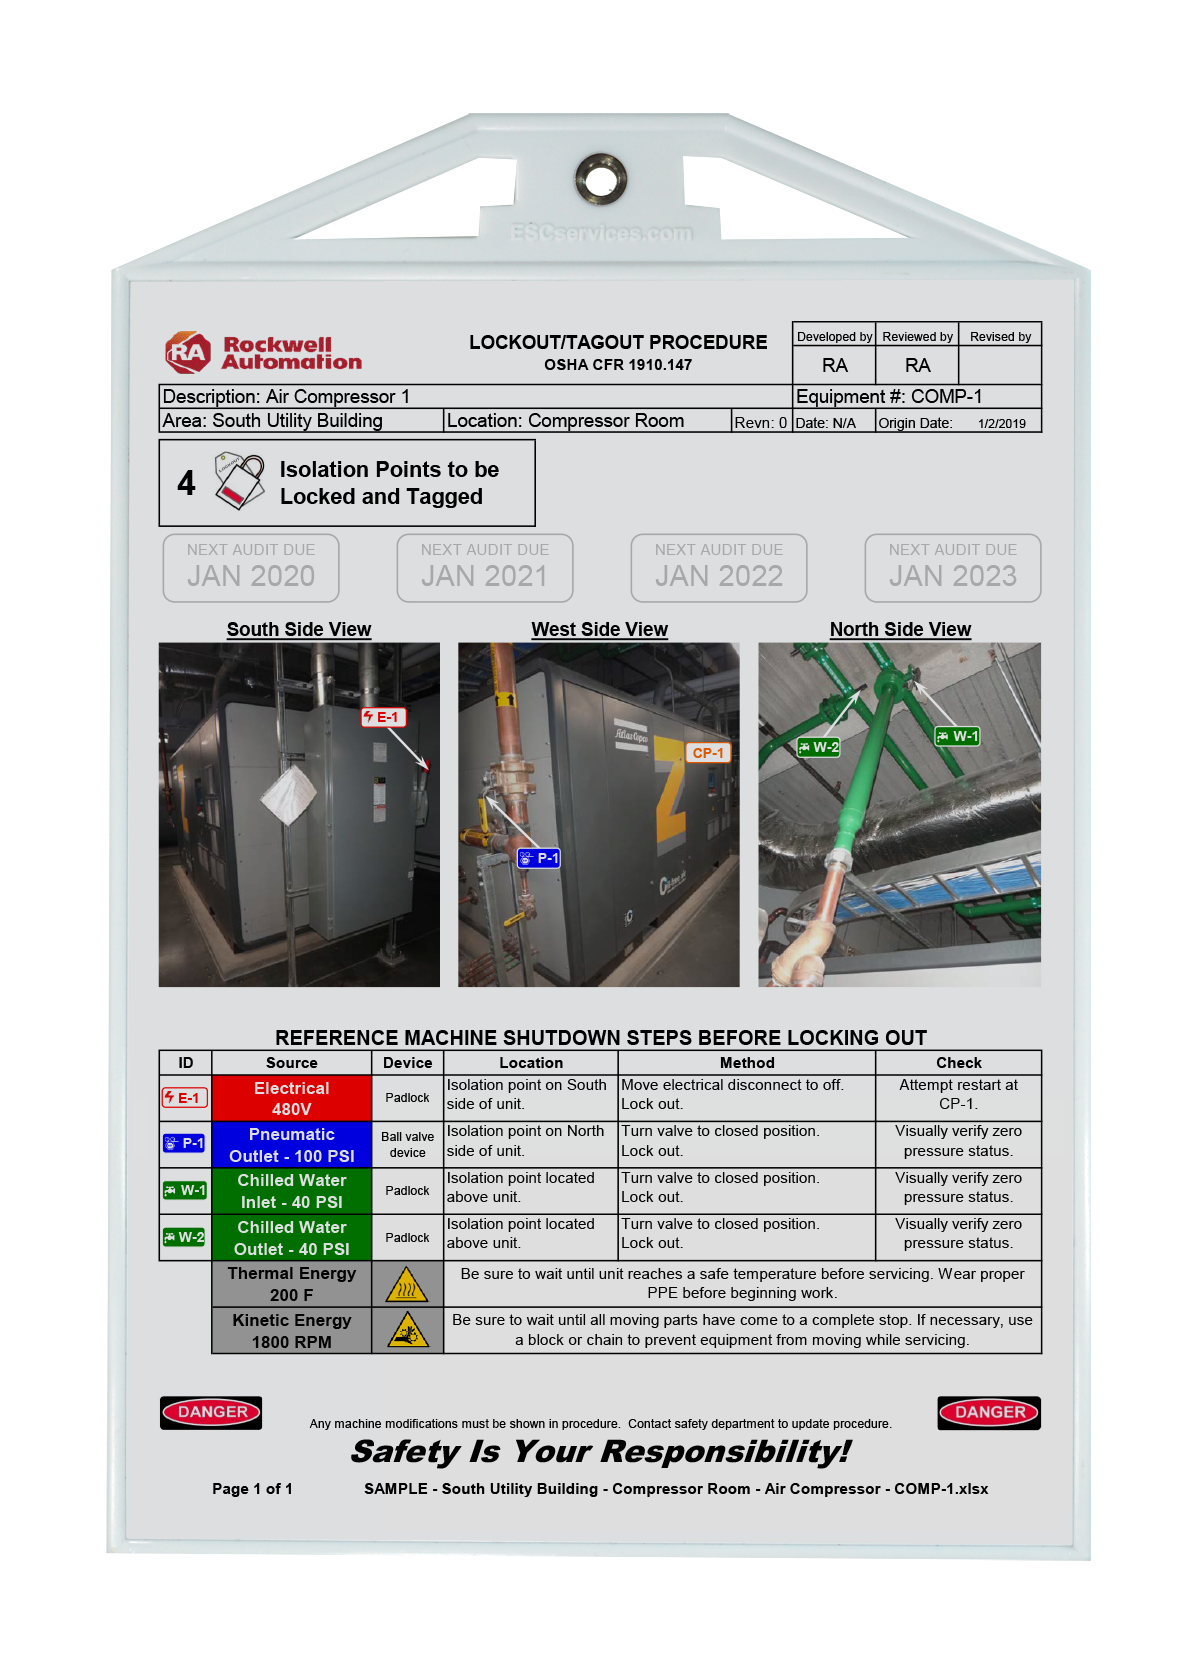 Graphical lockout/tagout procedures document